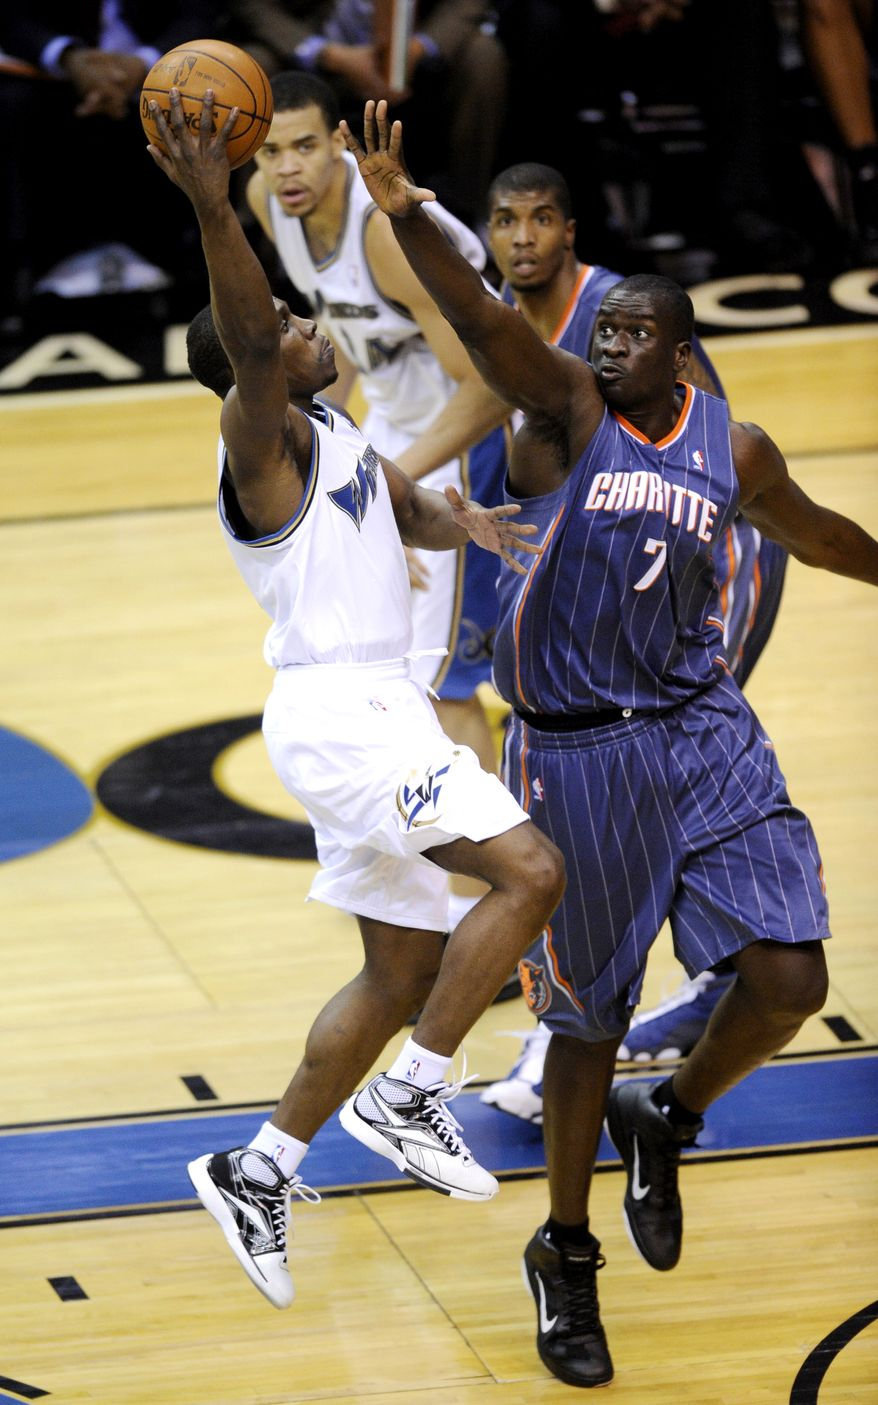 Washington Wizards Lester Hudson, left, goes to the basket against Charlotte Bobcats center DeSagana Diop (7) during the second half of an NBA basketball game, Monday, Dec. 20, 2010, in Washington. The Wizards won 108-75. (AP Photo/Nick Wass)